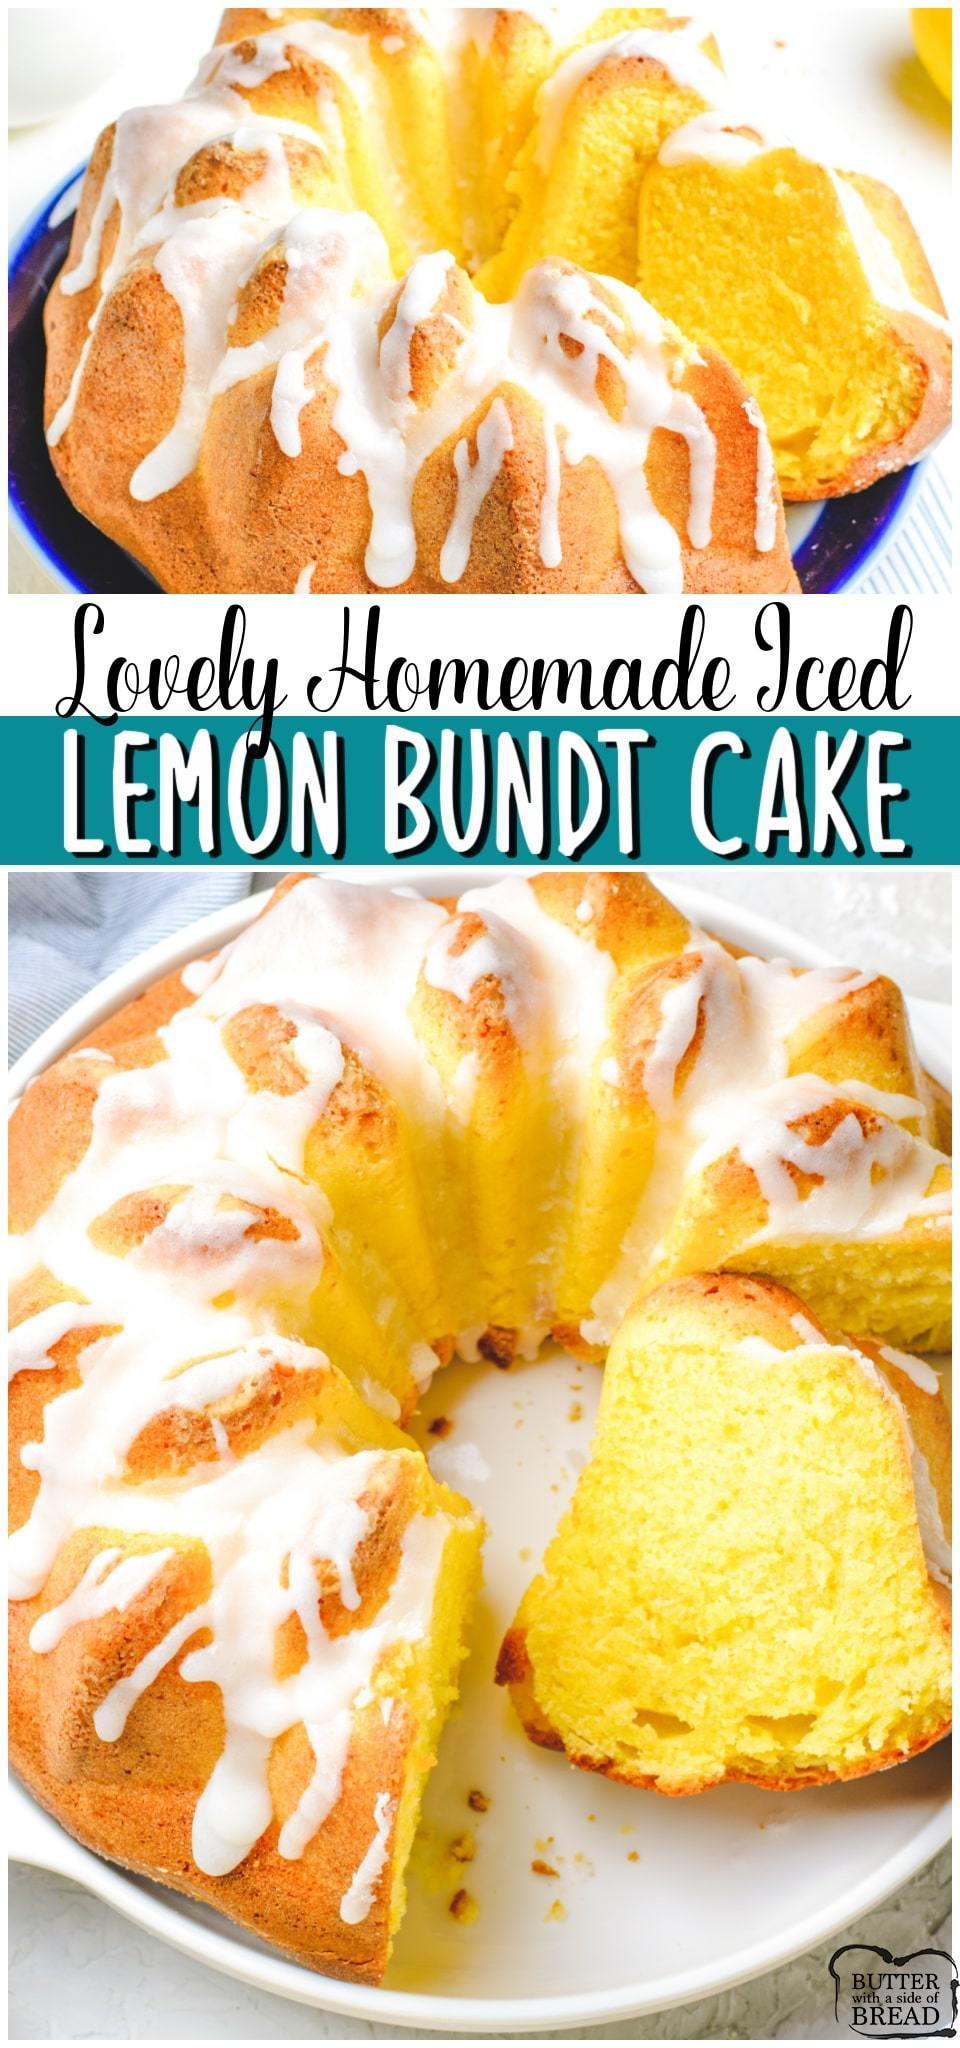 Iced lemon bundt cake made with classic ingredients with bright, fresh lemon flavor! Vanilla cake recipe with lemon juice and lemon zest for a delicious Springtime dessert.